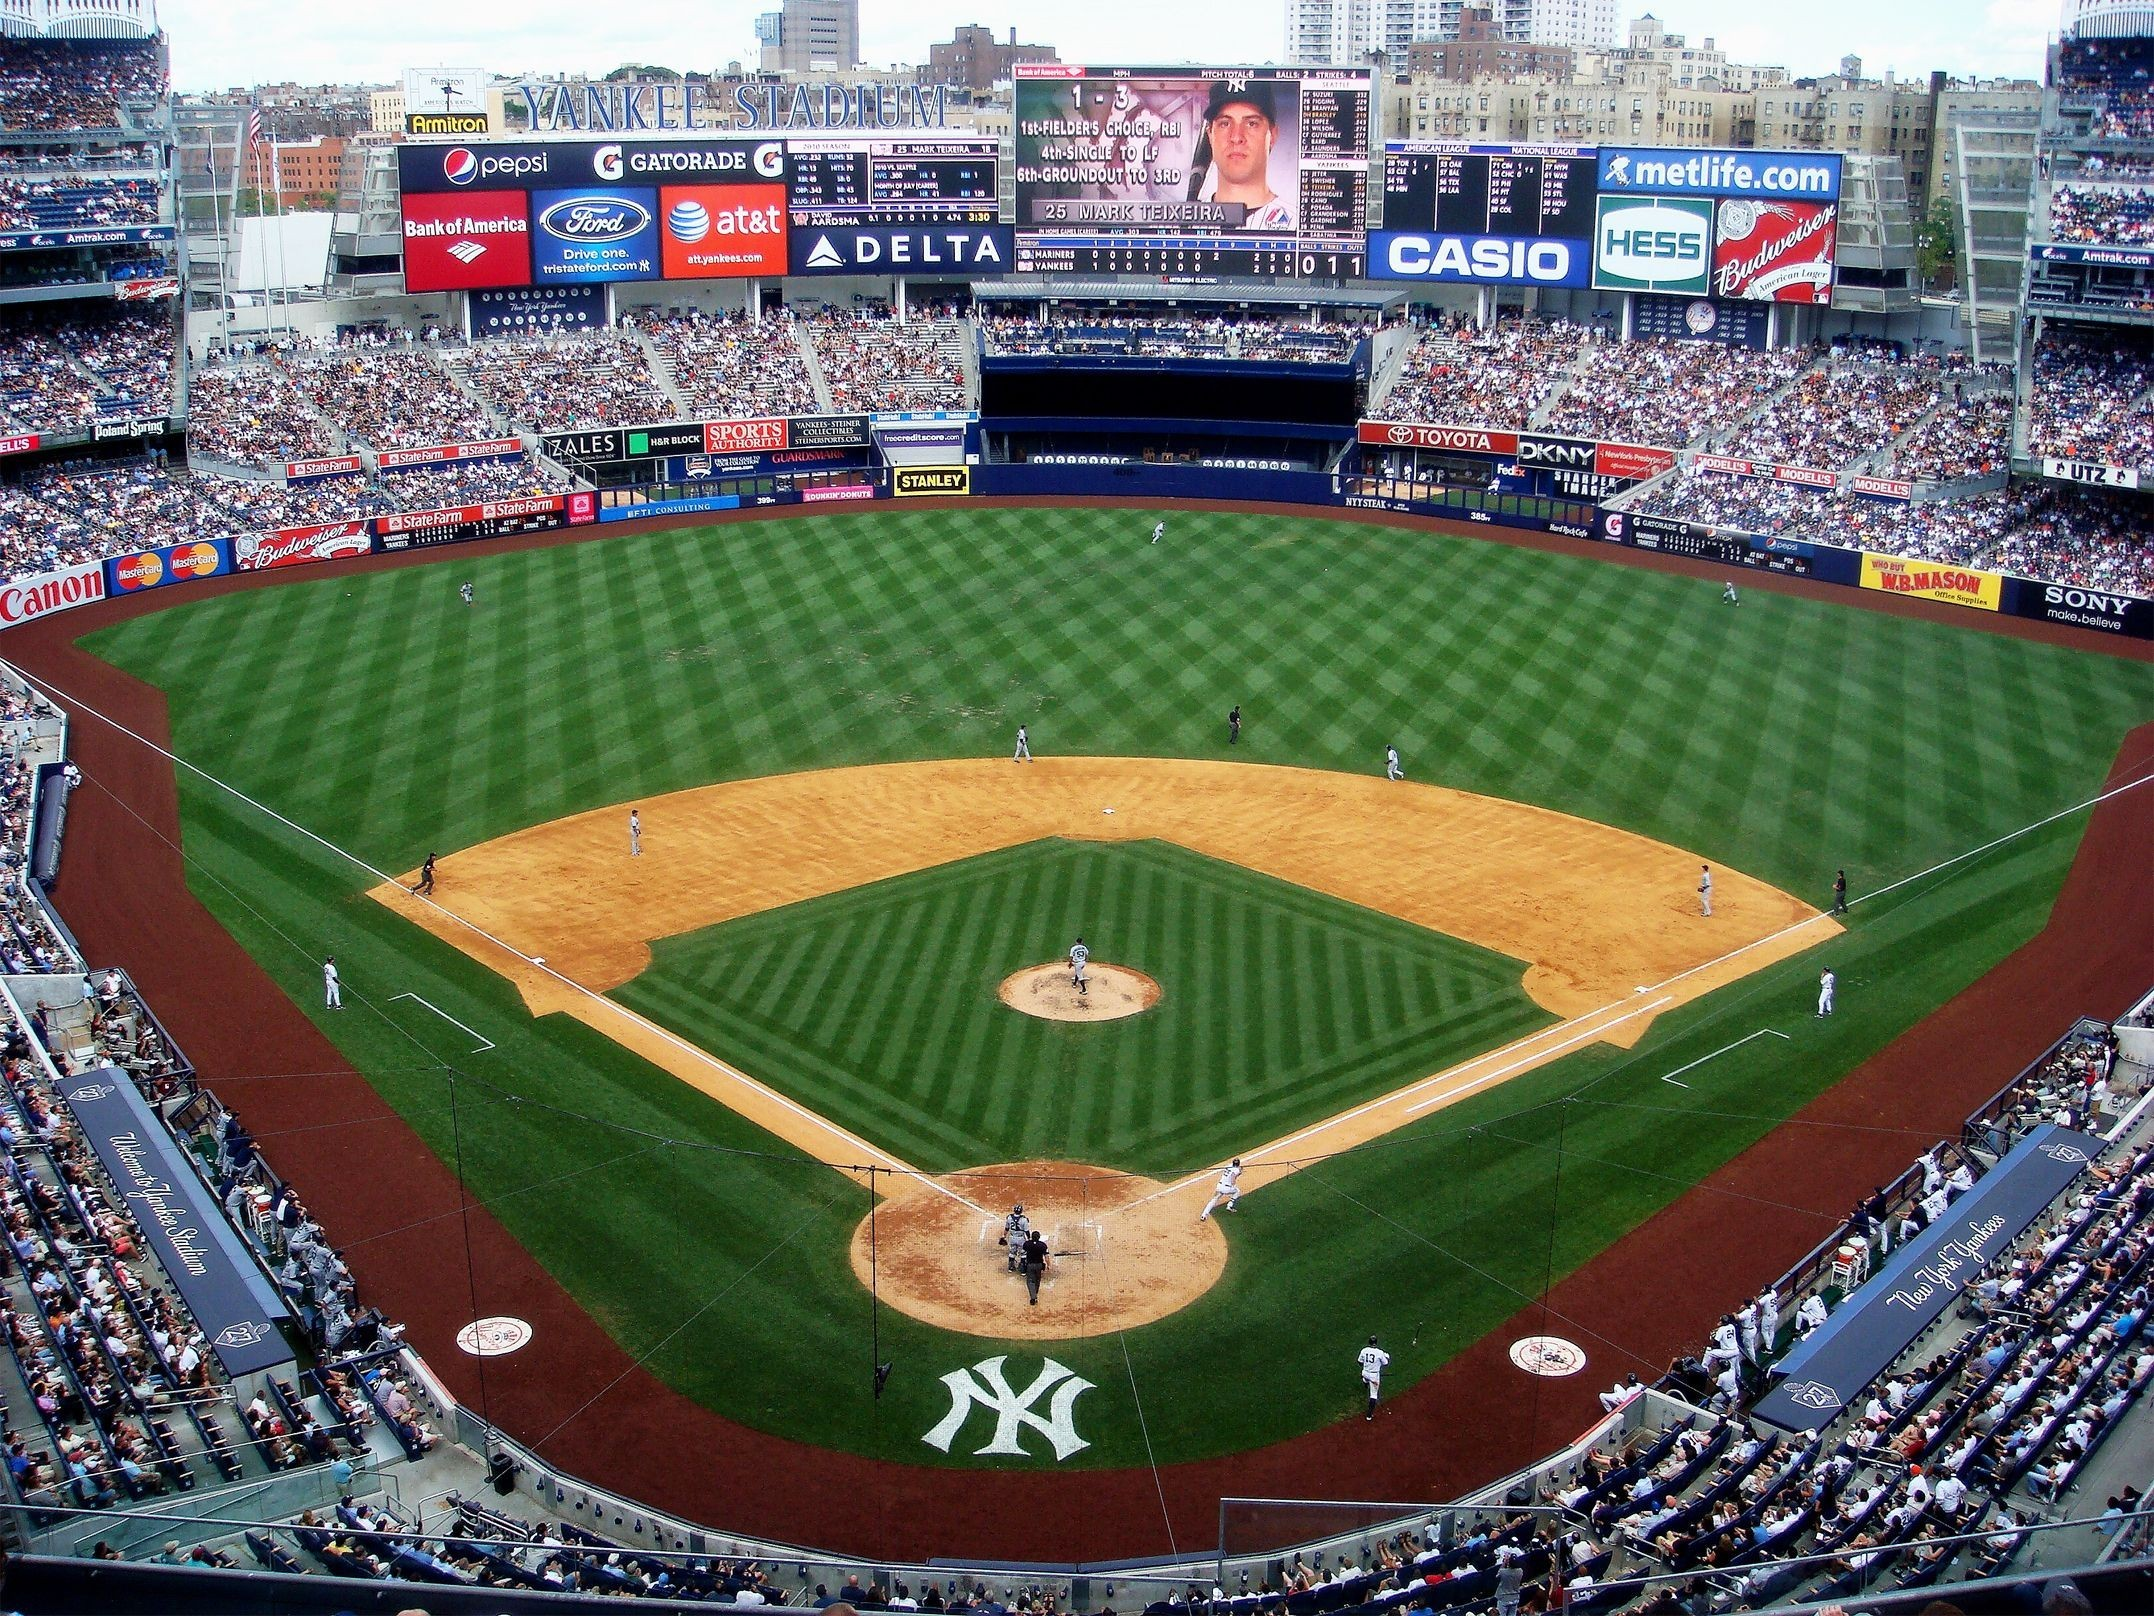 Yankee stadium wallpapers 2018 72 background pictures 2154x1616 citi field wallpaper copy new york mets desktop wallpapers group 63 save the new york altavistaventures Image collections